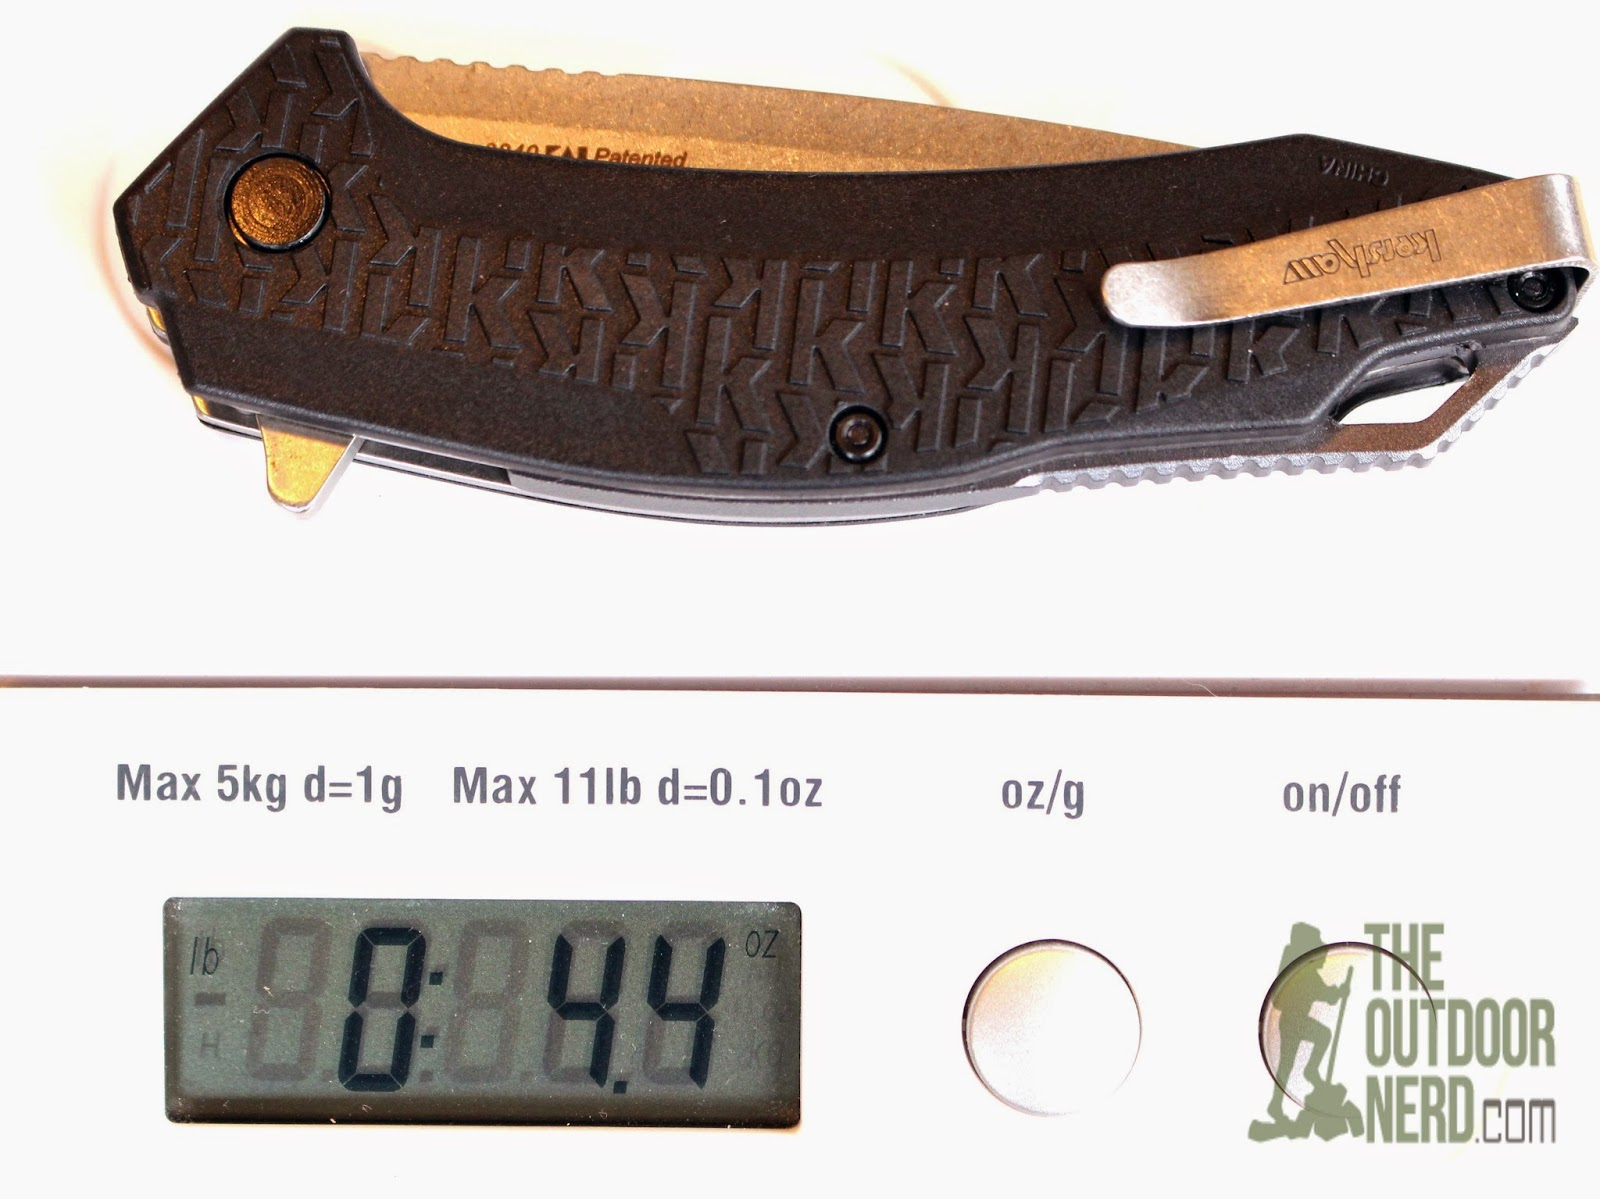 Kershaw Frefall EDC Pocket Knife - On Scale